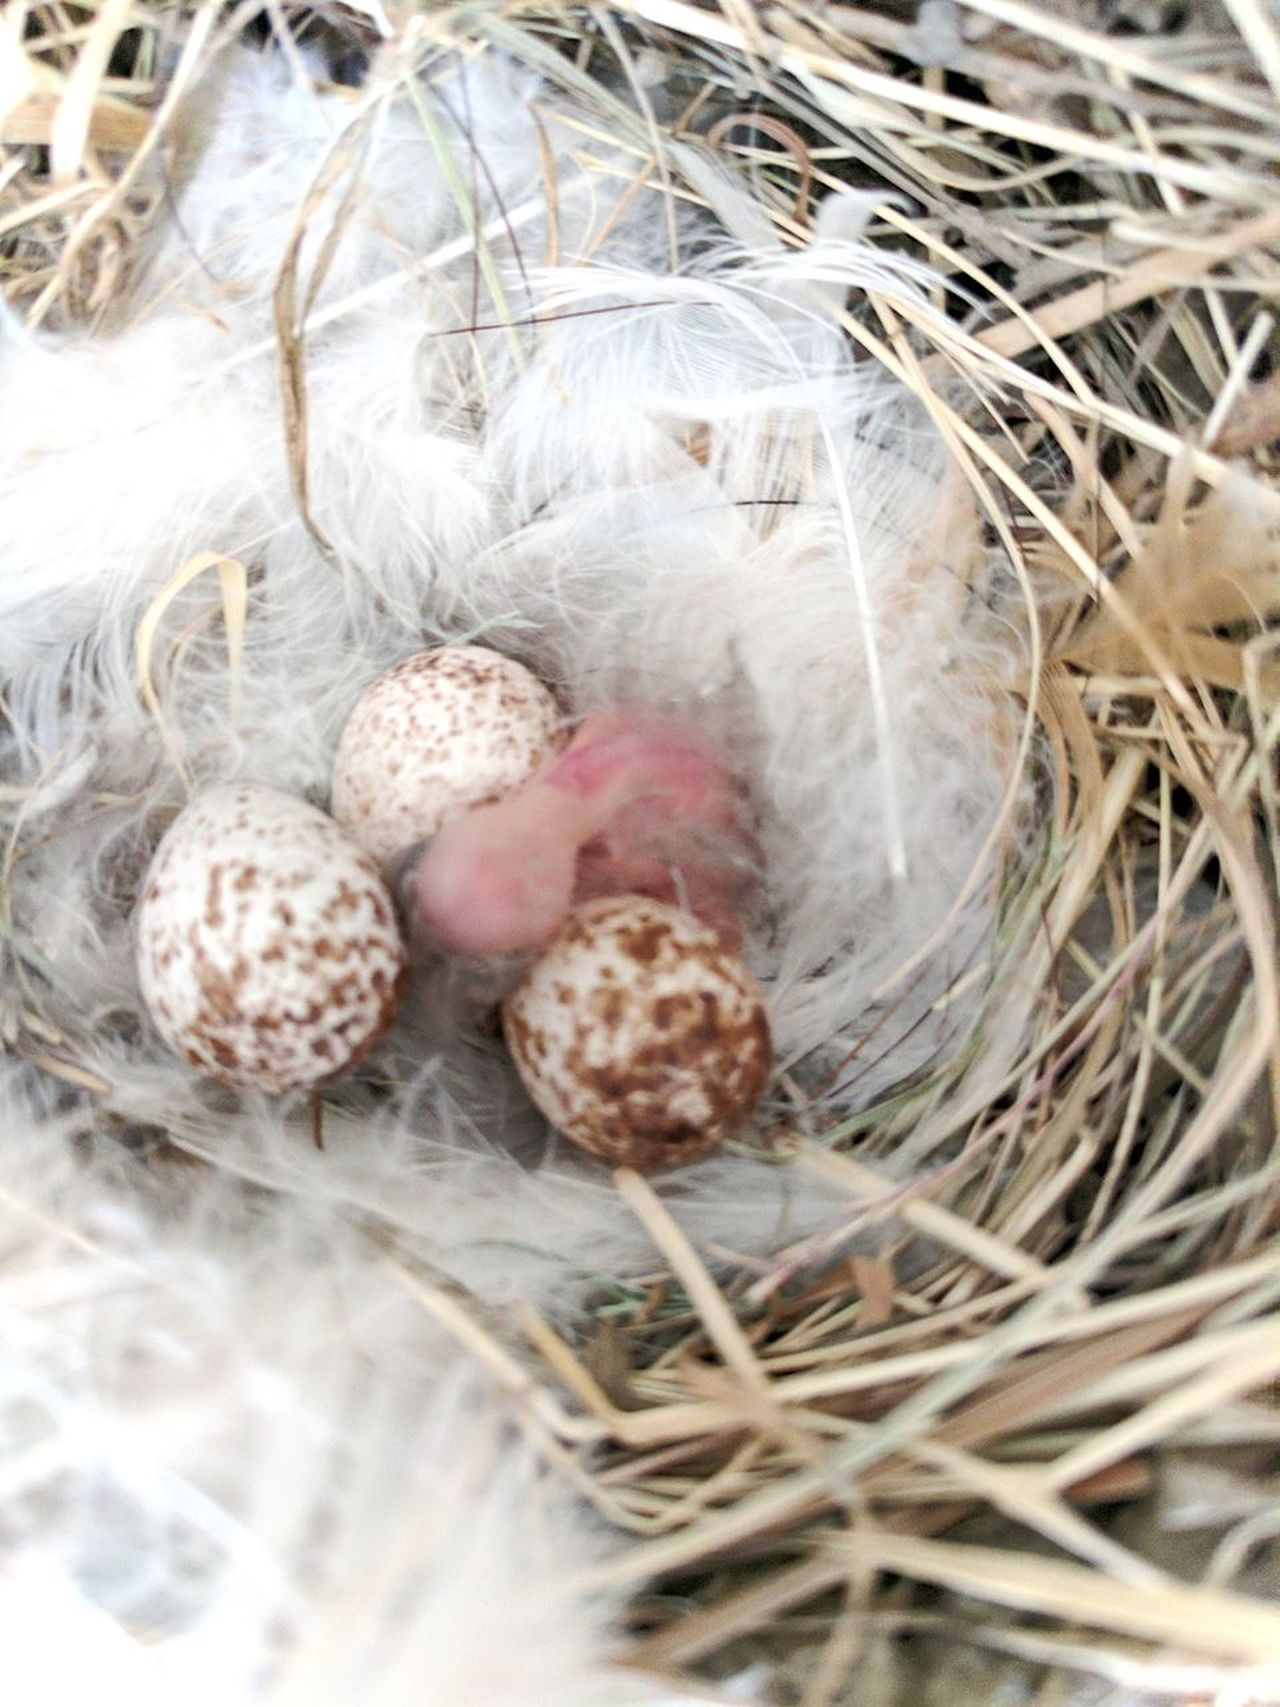 No People Outdoors Close-up Bird Baby Bird Nest Egg Bird Egg Zoom Nature Outdoors Photograpghy  Feathers Of Birds Pink Bird Newborn Birds Sparrow